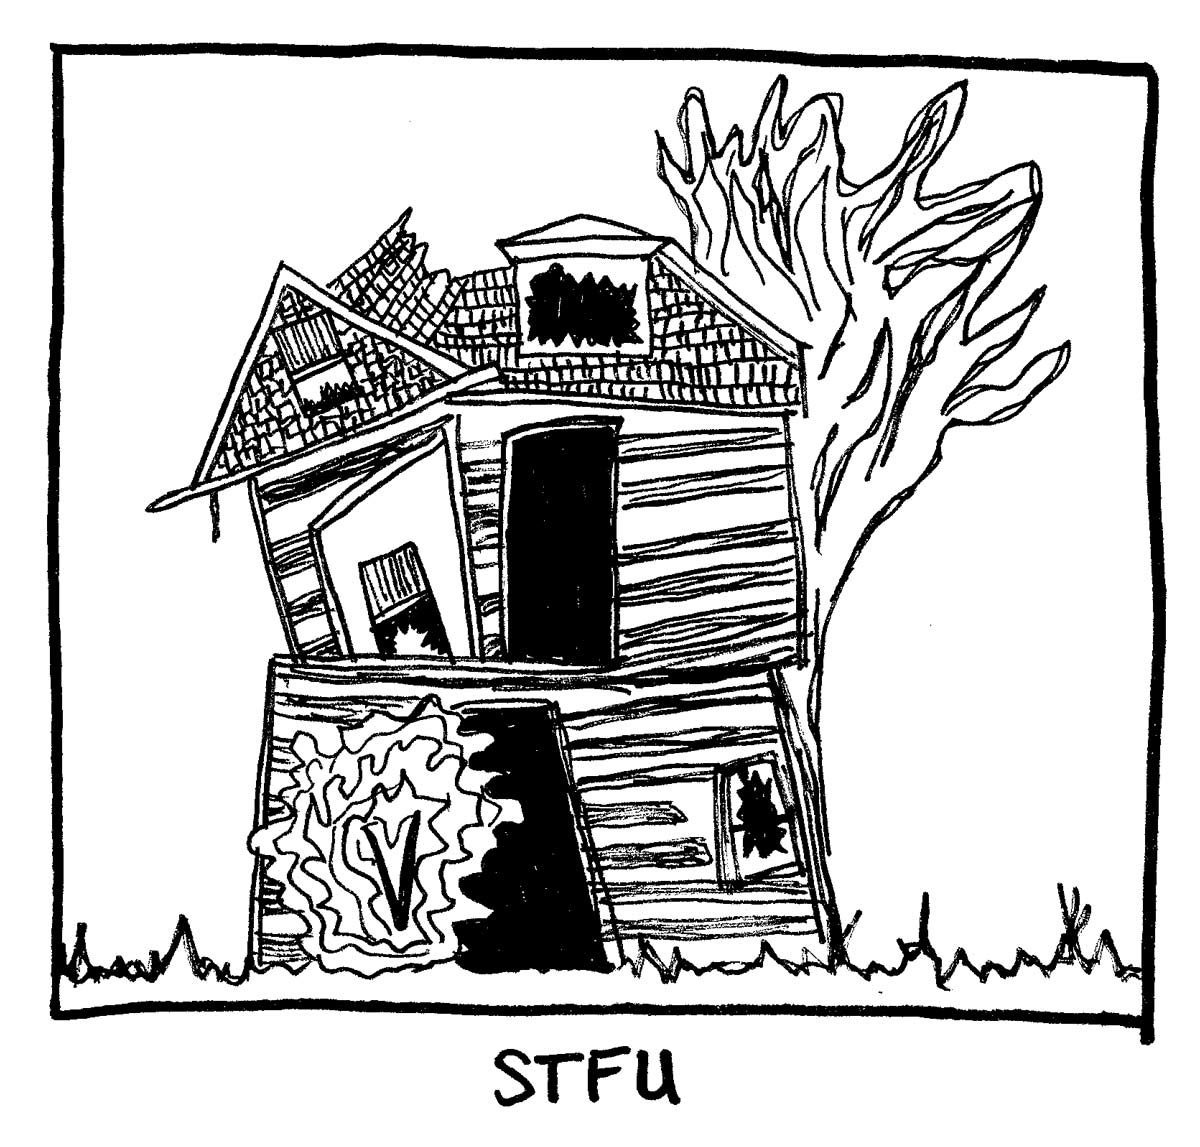 image of wooden house on fire. Labeled: STFU